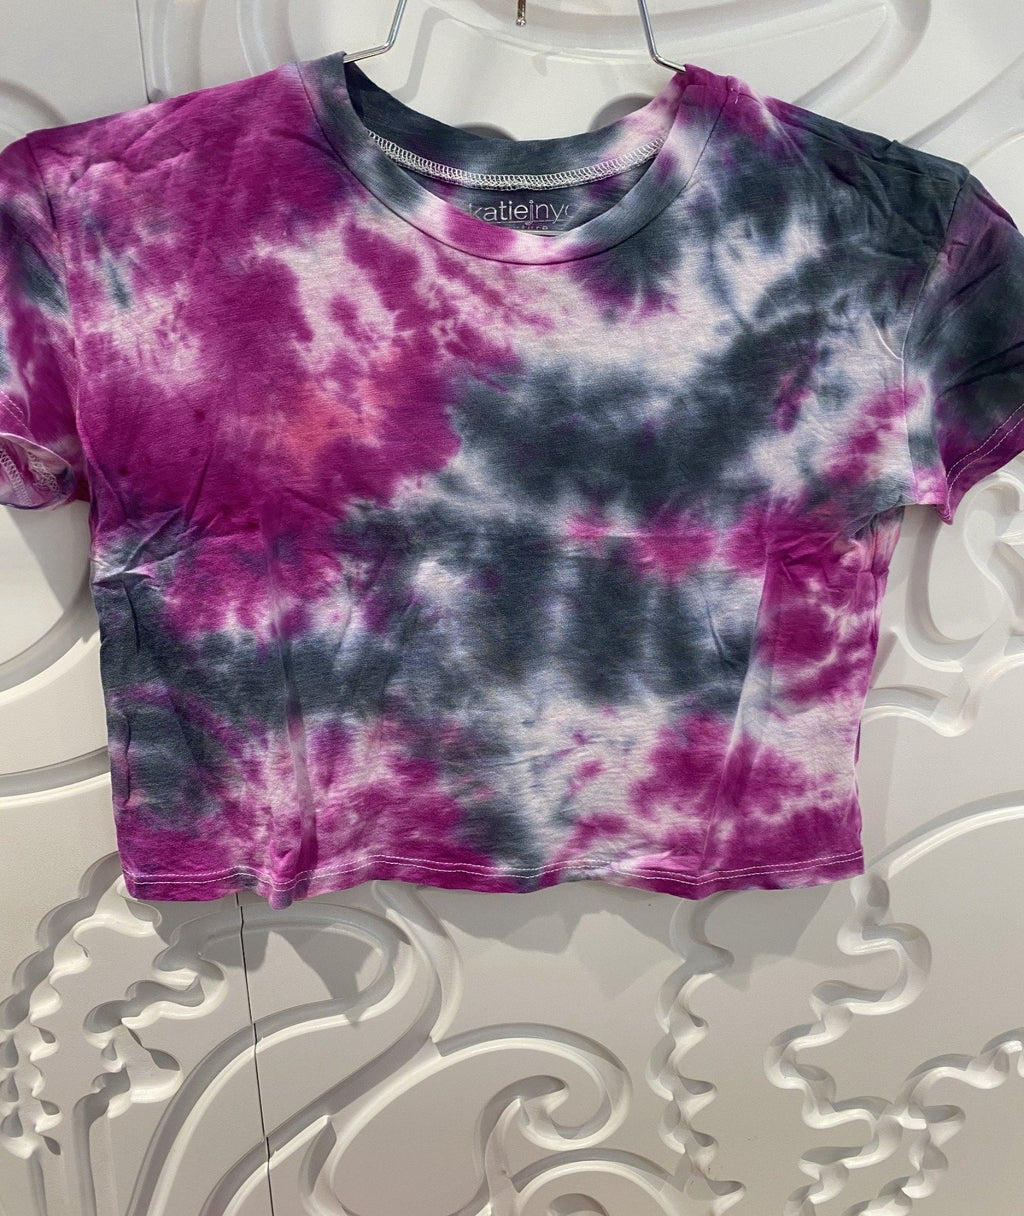 Katie J NYC Girls Fearless Variety Tie-Dye Crop Tee